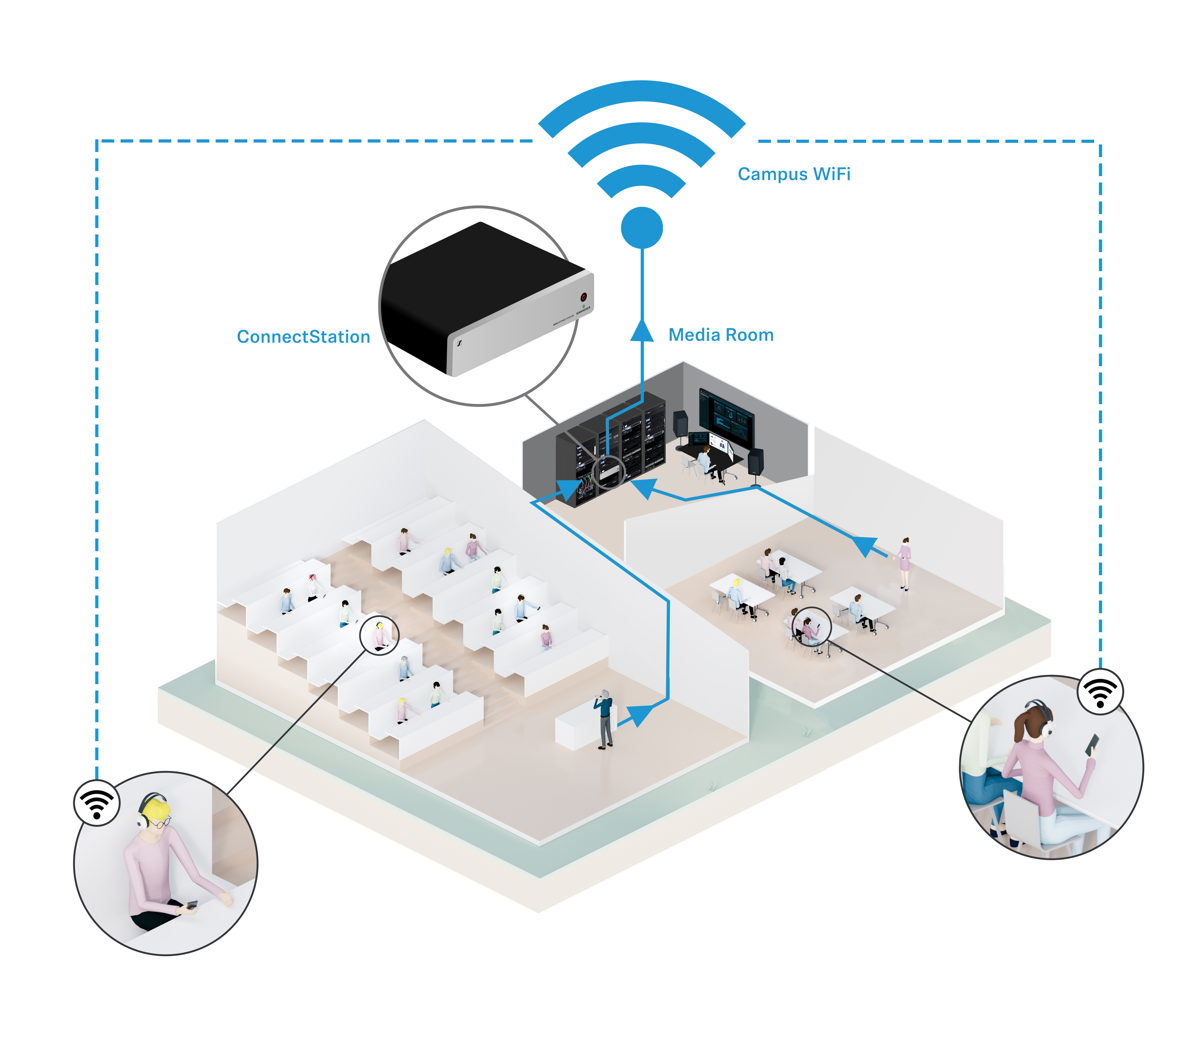 How MobileConnect works: The audio signals from the lecturer's microphone are sent to the MobileConnect Station. There, the signals are converted into network-compatible, digital packets. The audio data are transmitted to the Wi-Fi access points via the Station's network output, allowing them to be accessed anywhere throughout the campus's Wi-Fi network. The students simply enter the channel number in the smartphone app or scan a QR code to enable them to listen to the audio signal through headphones, induction accessories or a cochlear implant and to adjust the sound to their individual needs.